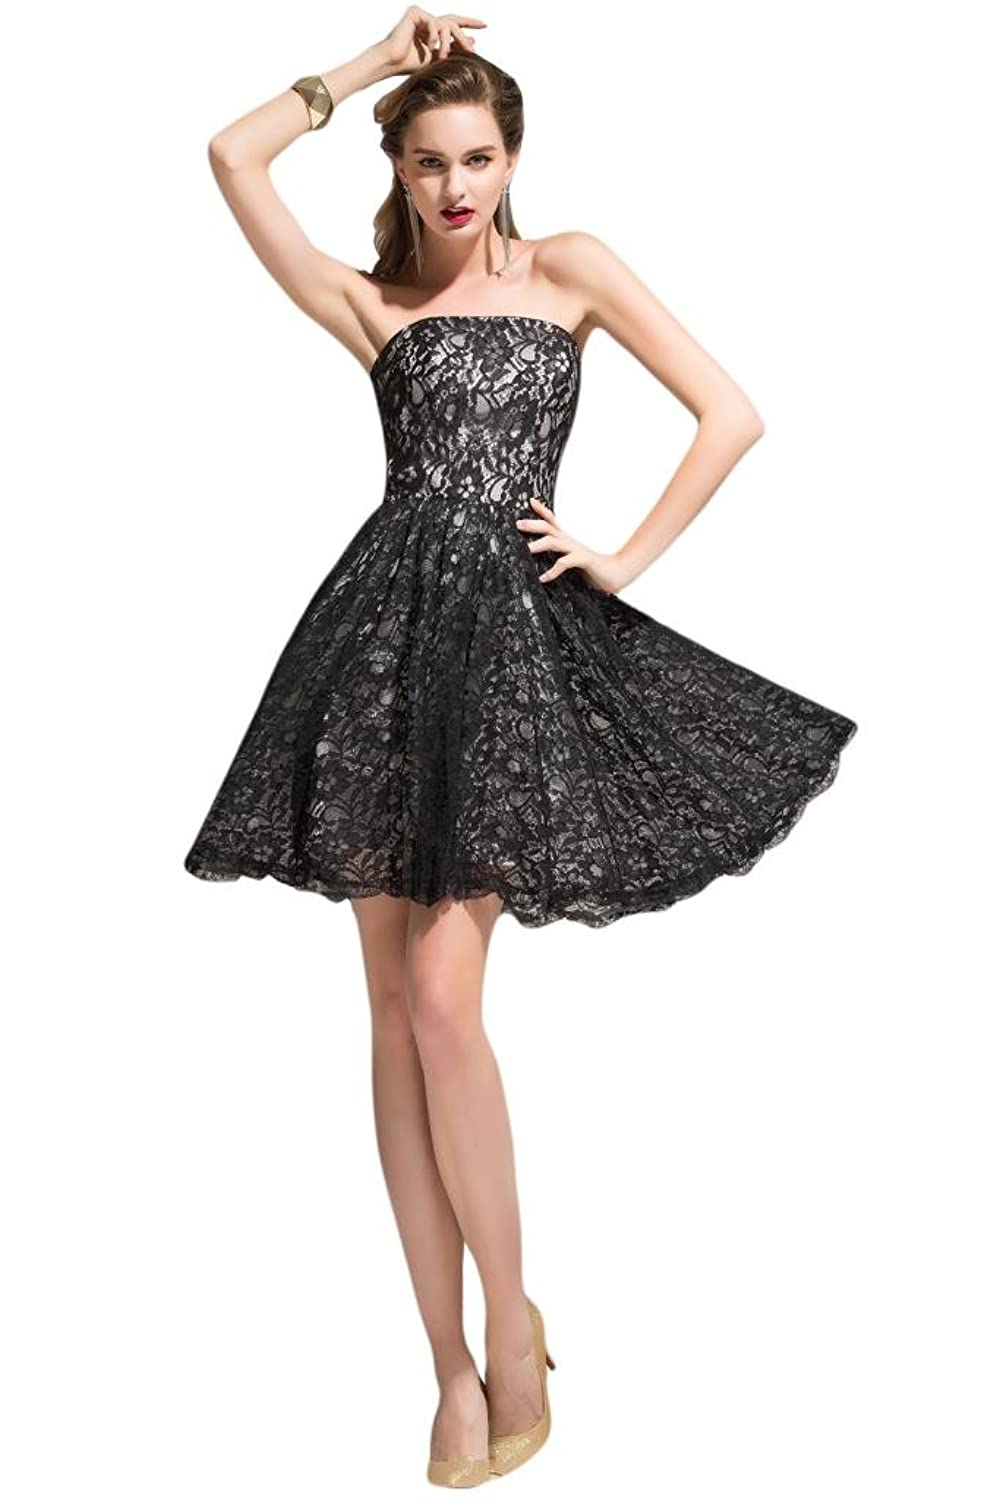 Sunvary Cute Black Lace Party Dresses Cocktail Dresses for 2015 Women